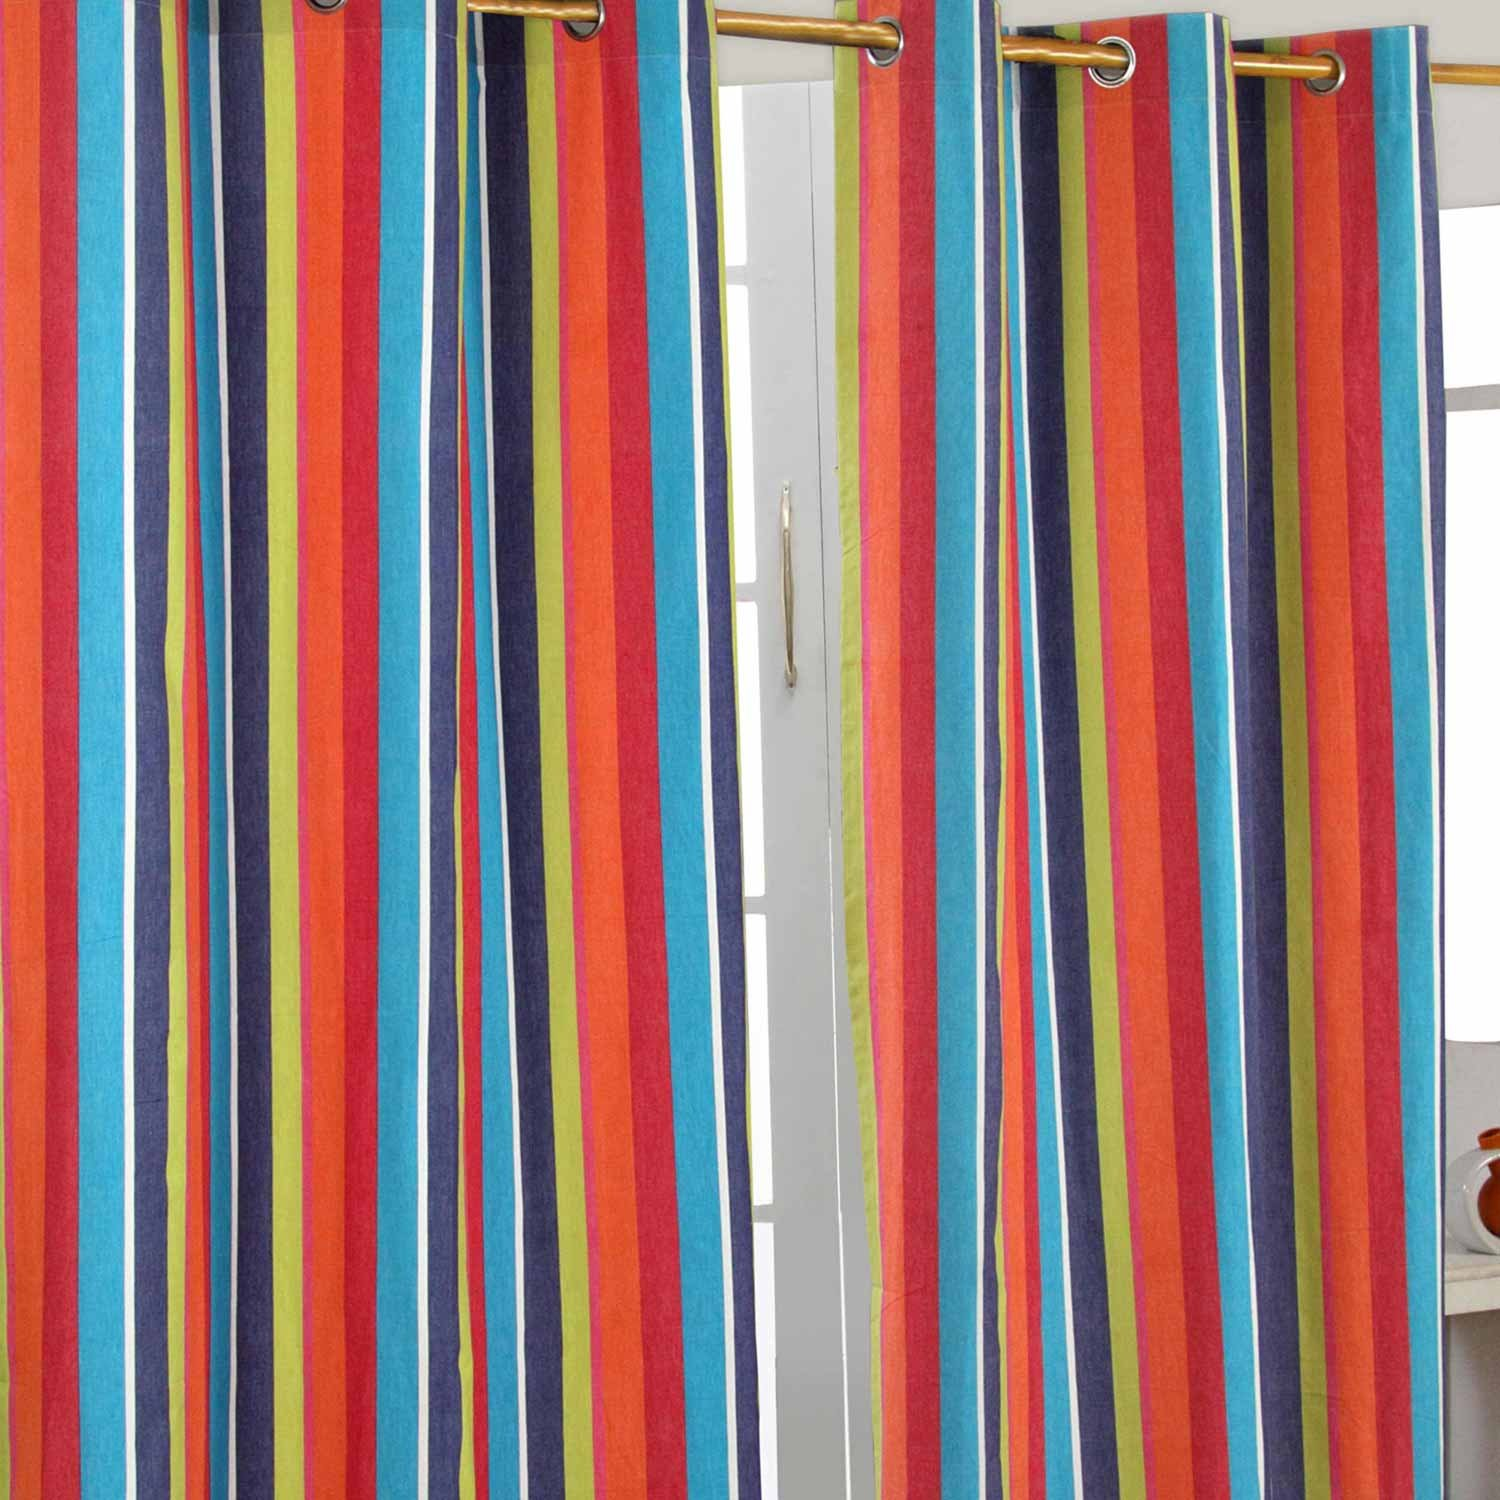 red curtains door ideas popular of pic floral handmade tfile for best curtain cotton and blue excellent top tab navy pict sunflower unbelievable drape yellow with